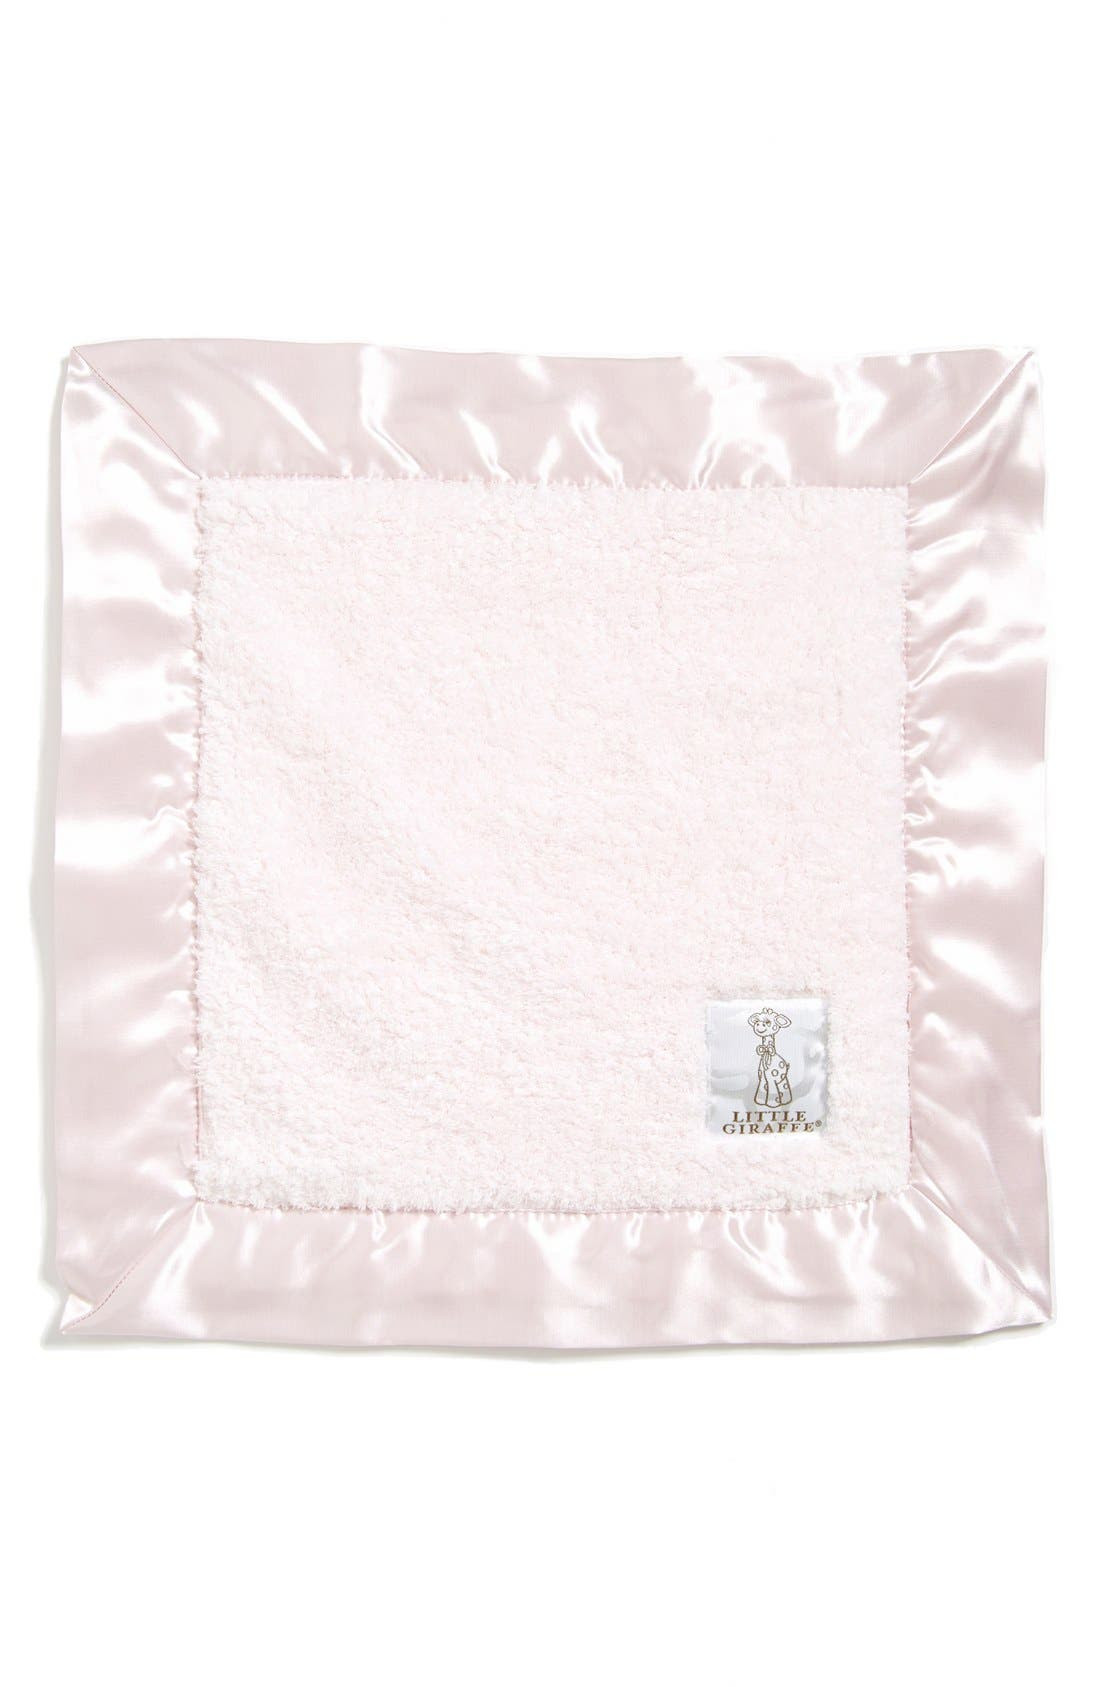 LITTLE GIRAFFE,                             Satin Trim Chenille Blanky,                             Main thumbnail 1, color,                             LIGHT PINK